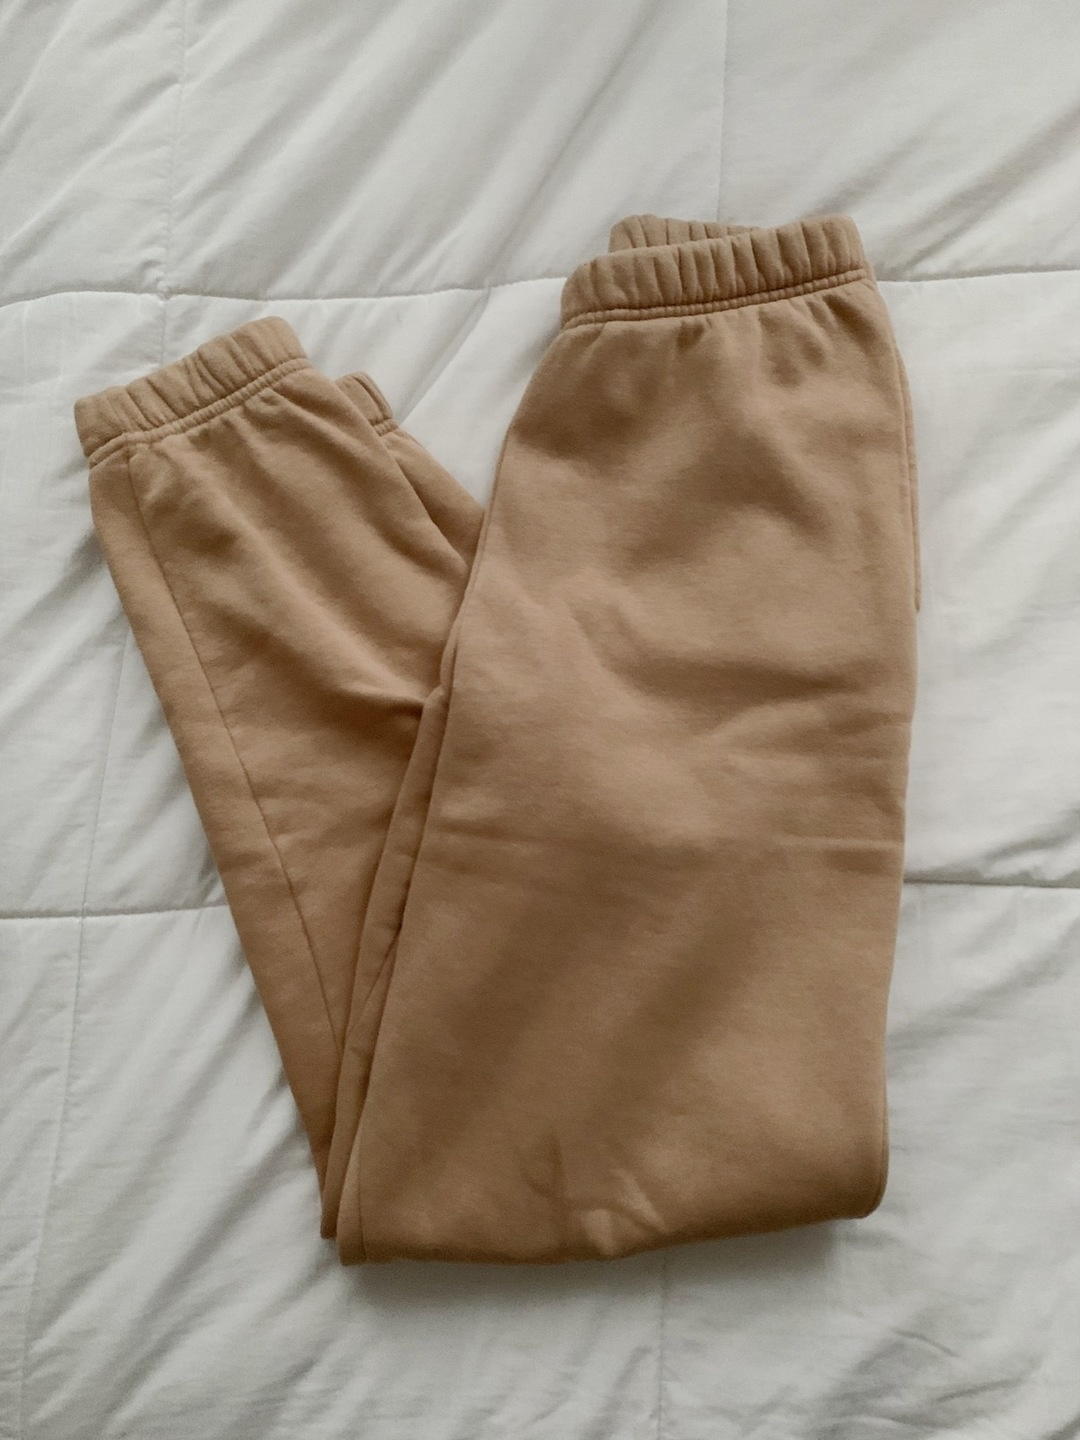 Women's trousers & jeans - GINA TRICOT photo 1